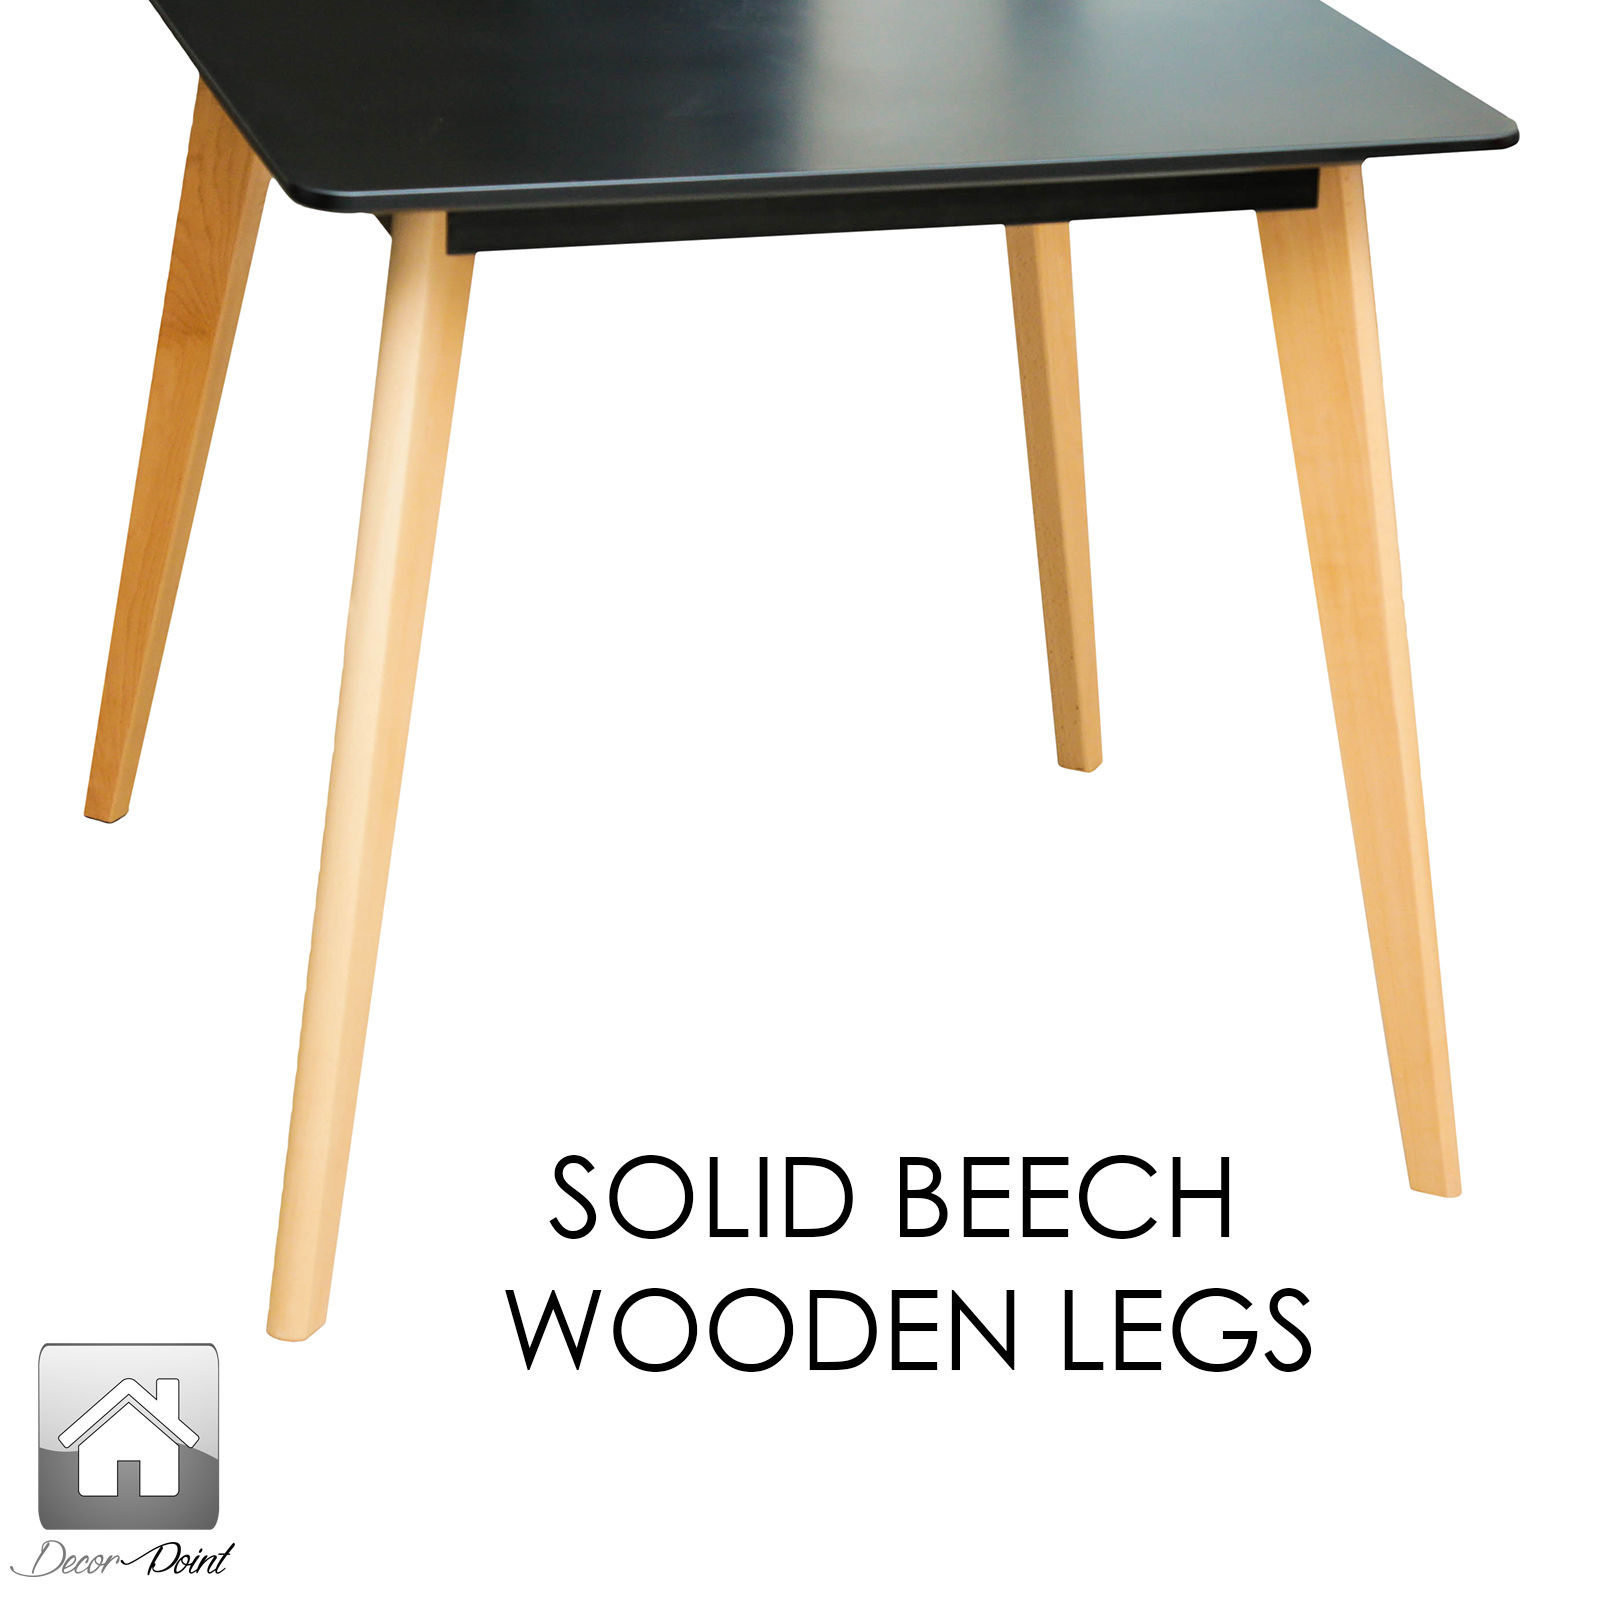 City Medium Dining Table 4 x Replica Eames Sisly ABS  : City Table 3 from www.ebay.com.au size 1600 x 1600 jpeg 128kB